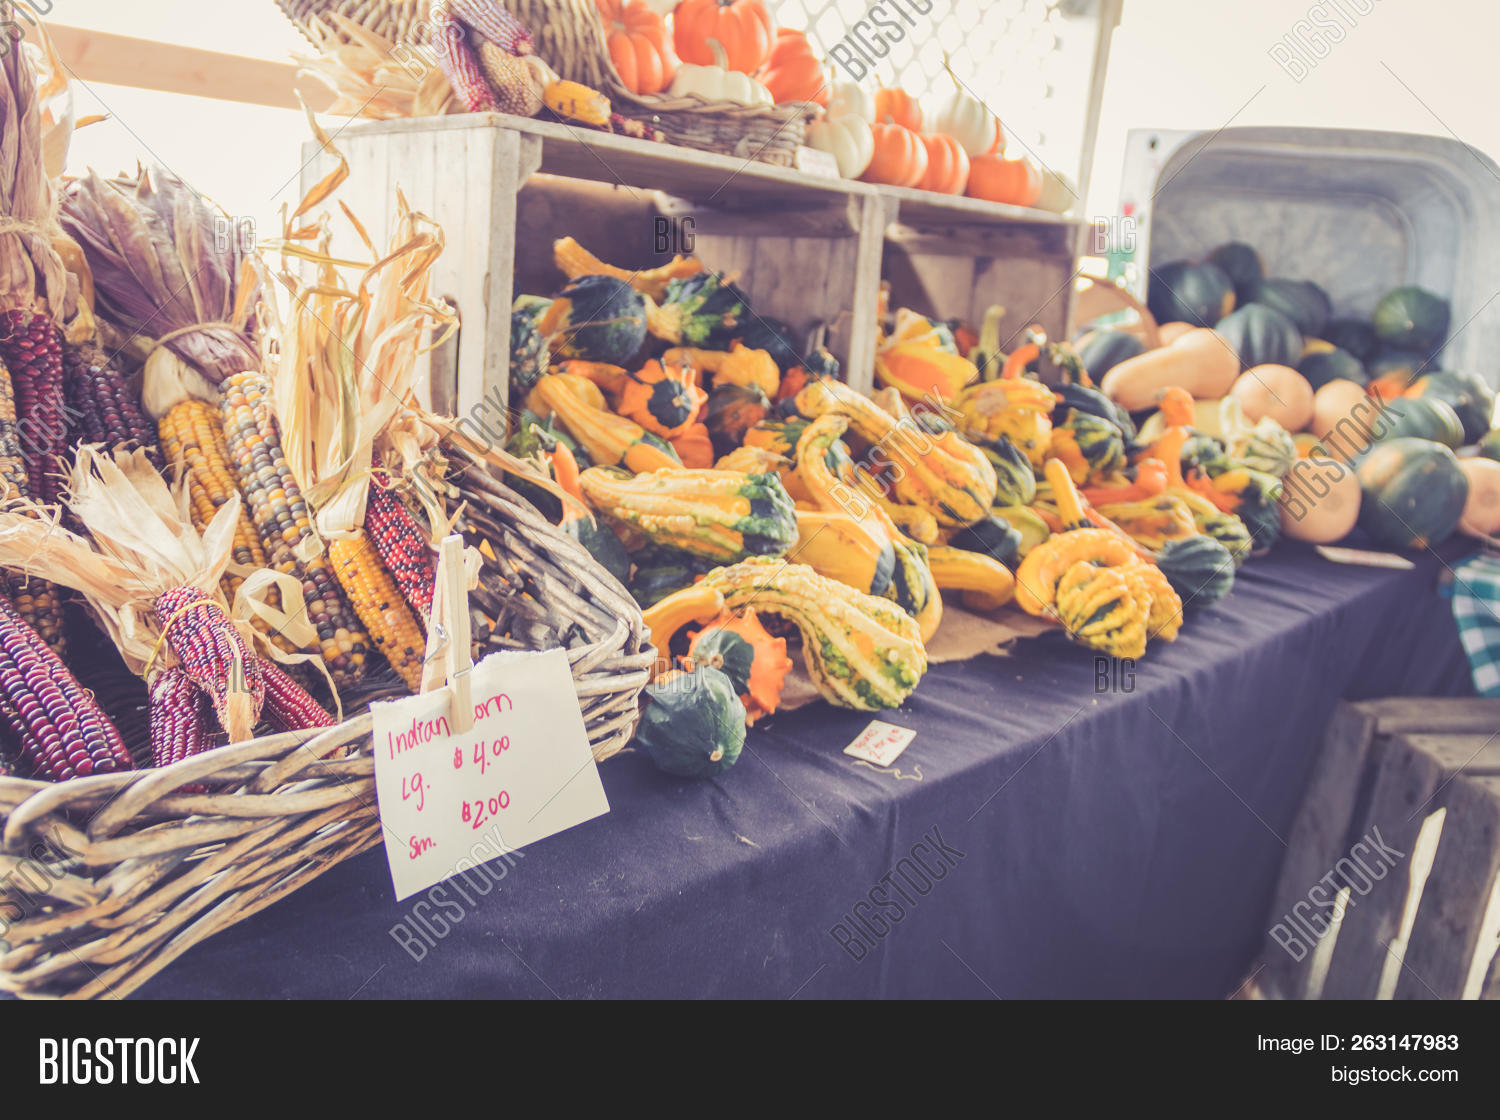 Decorative Corn Gourds Image Photo Free Trial Bigstock